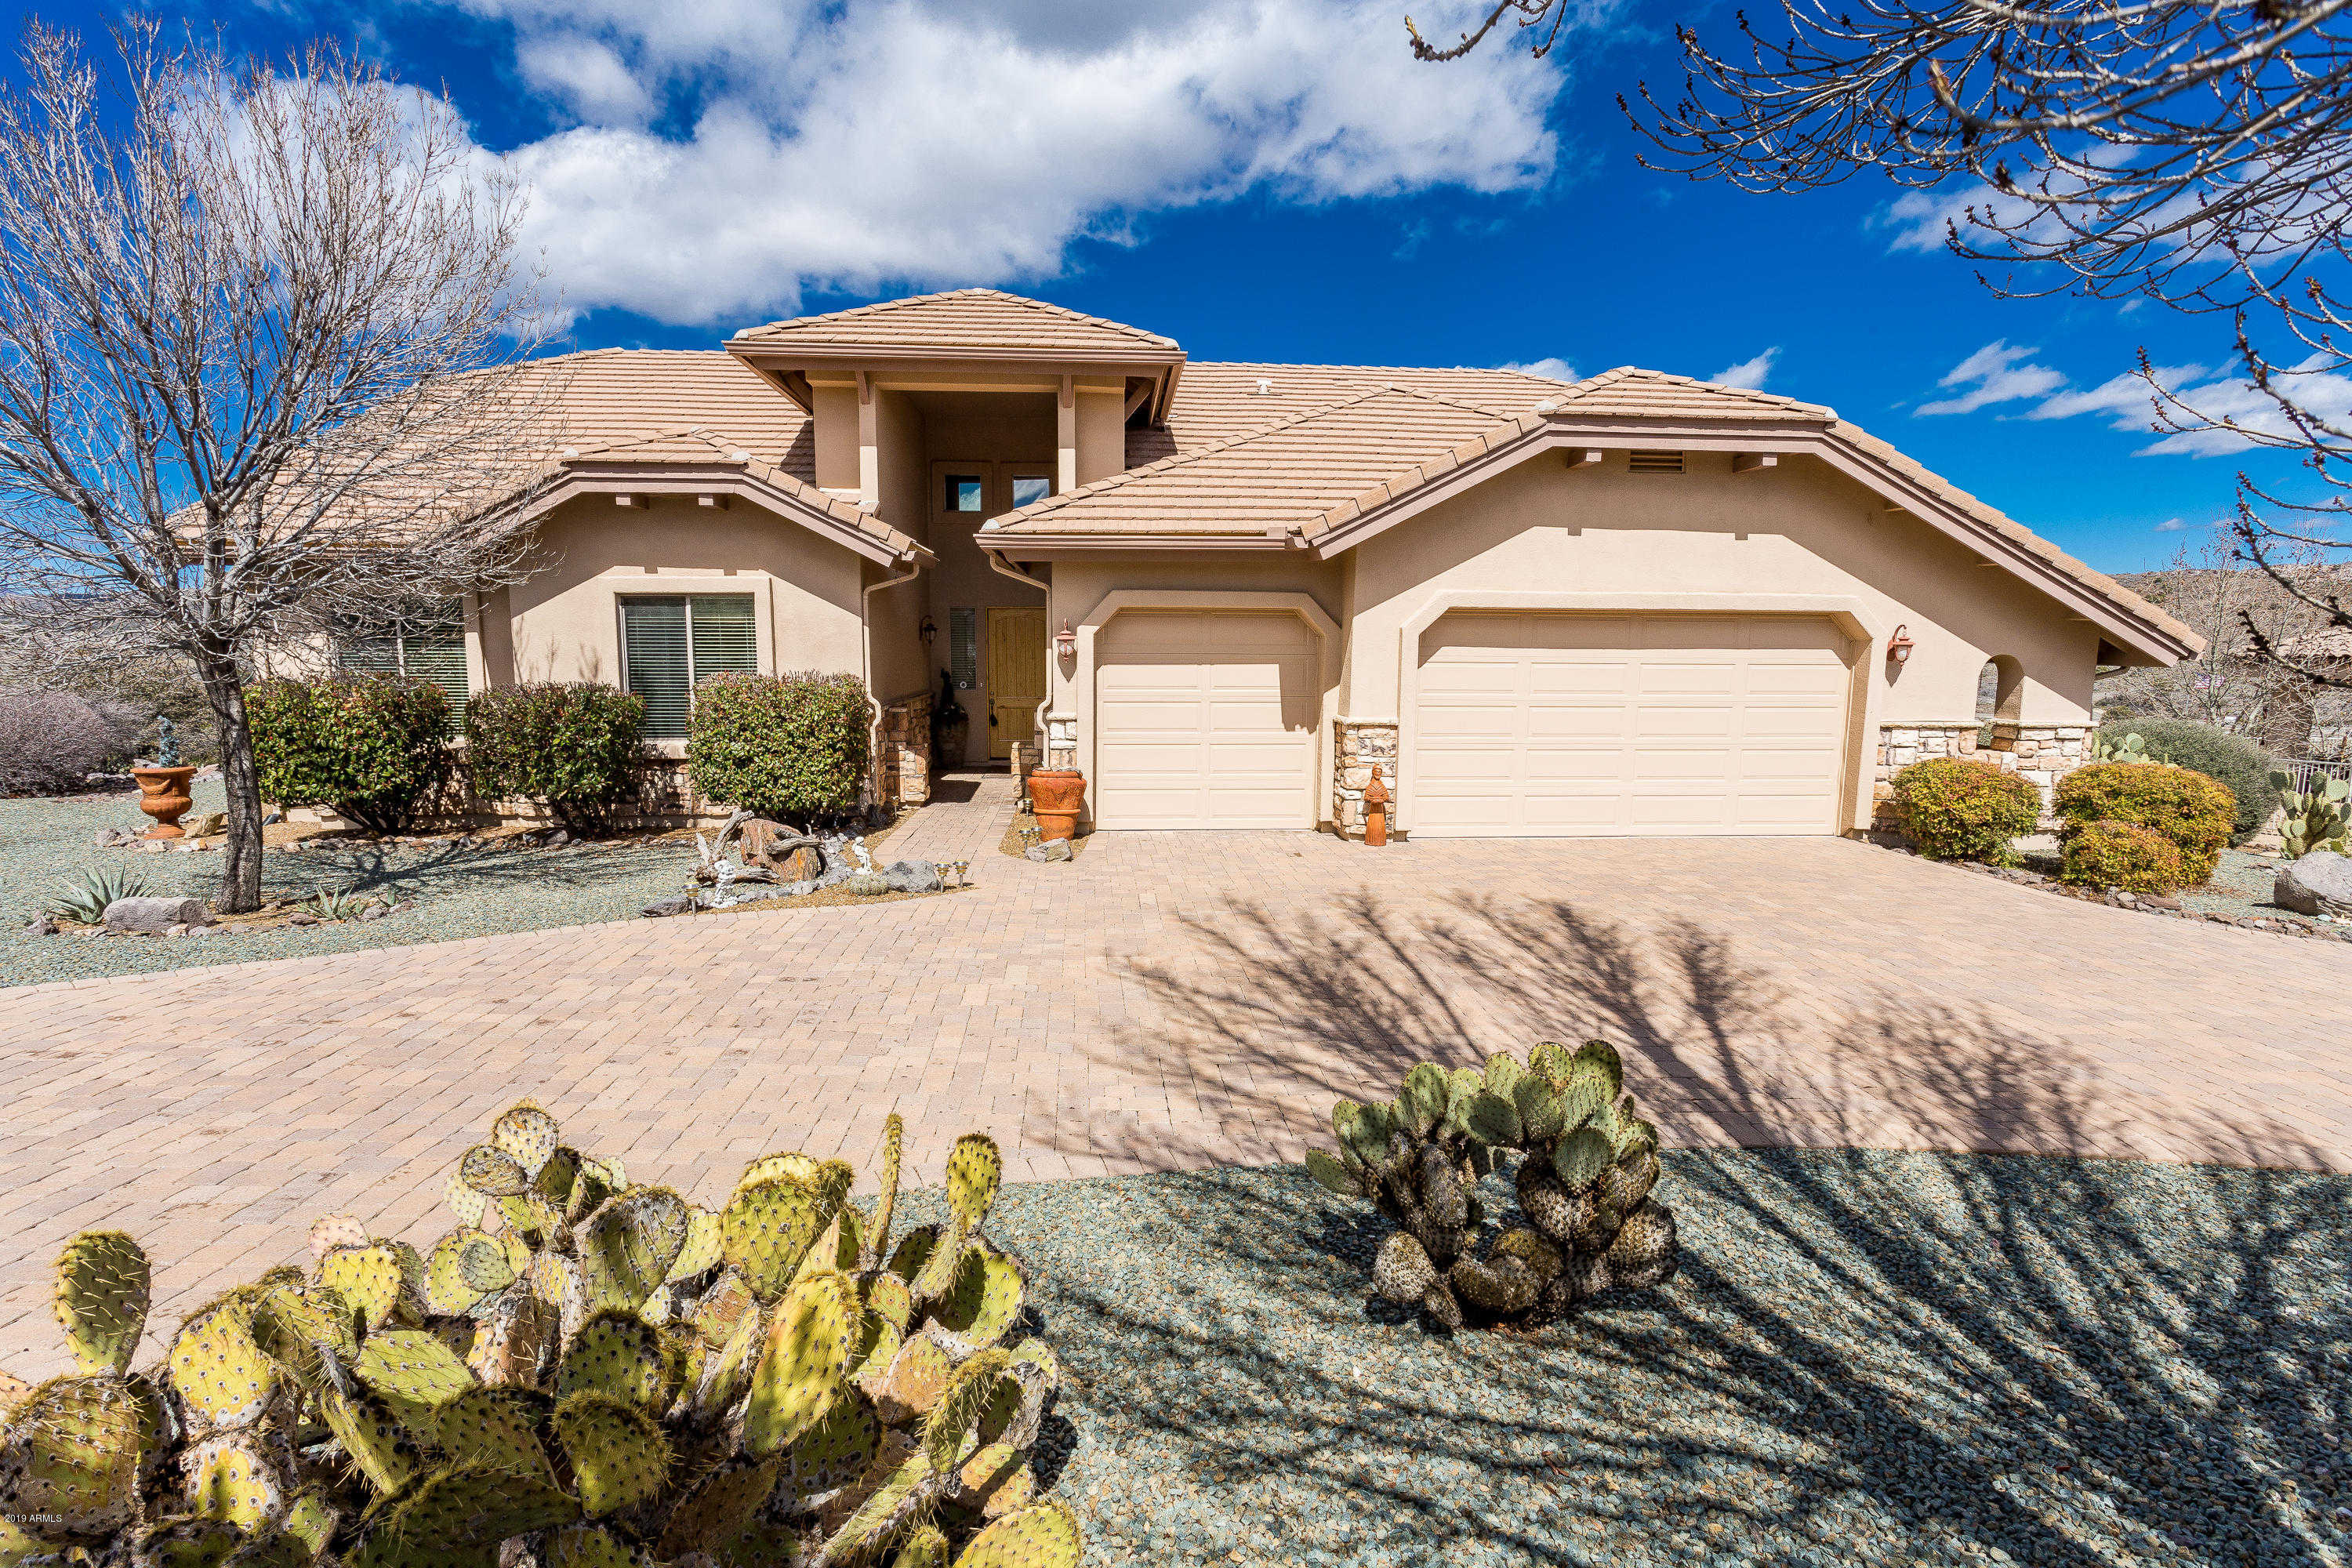 $400,000 - 4Br/2Ba - Home for Sale in Bensch Ranch Unit 1, Mayer